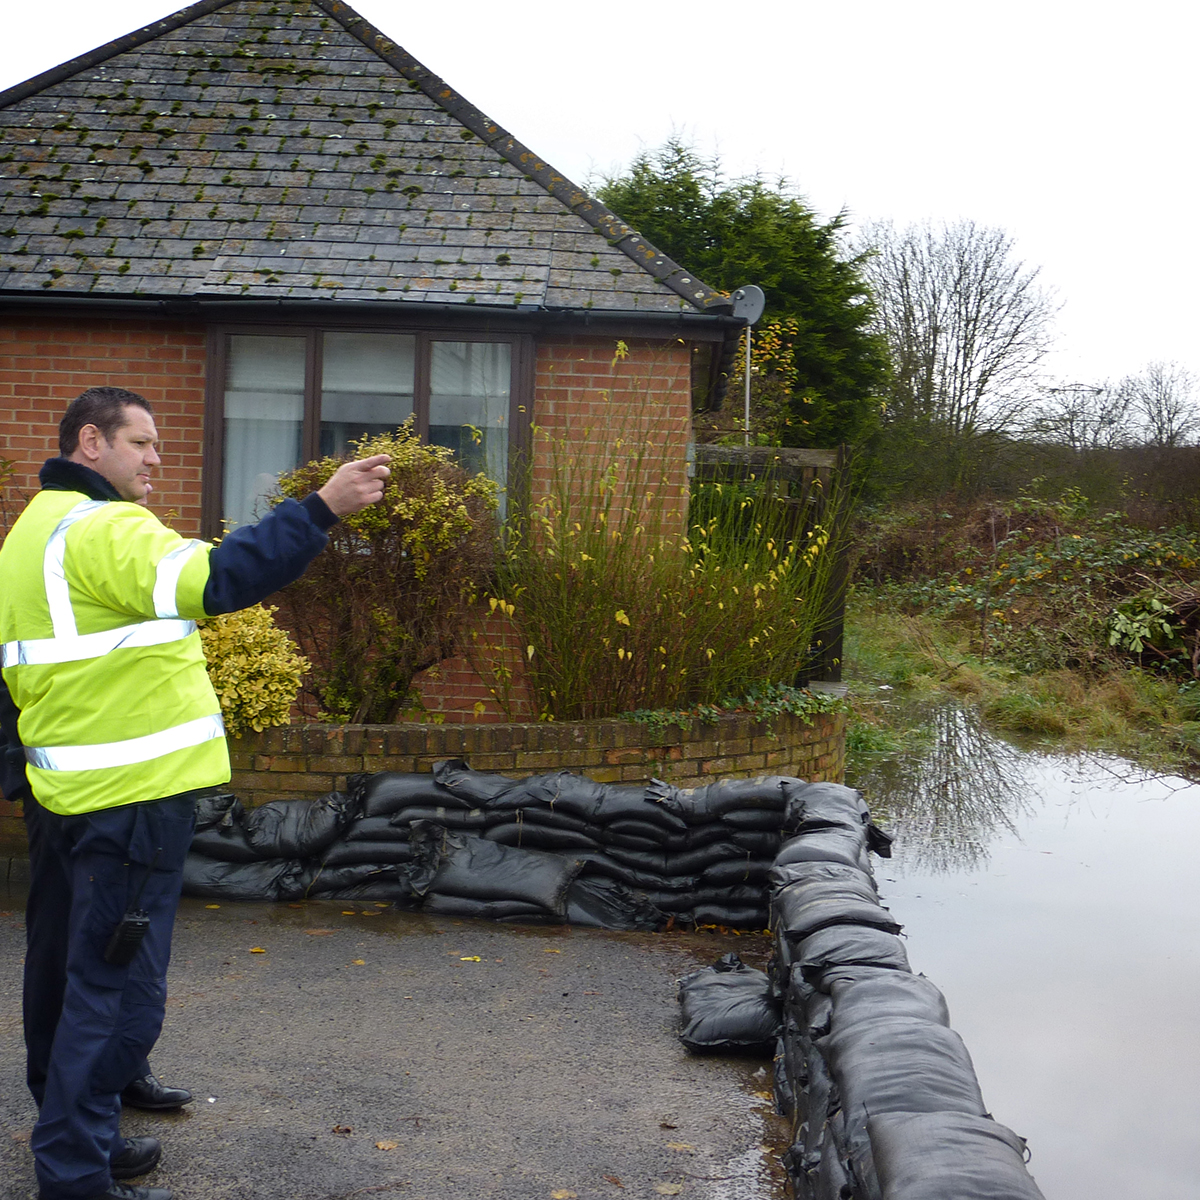 FLOODING: A number of flood alerts have been issued across Oxfordshire